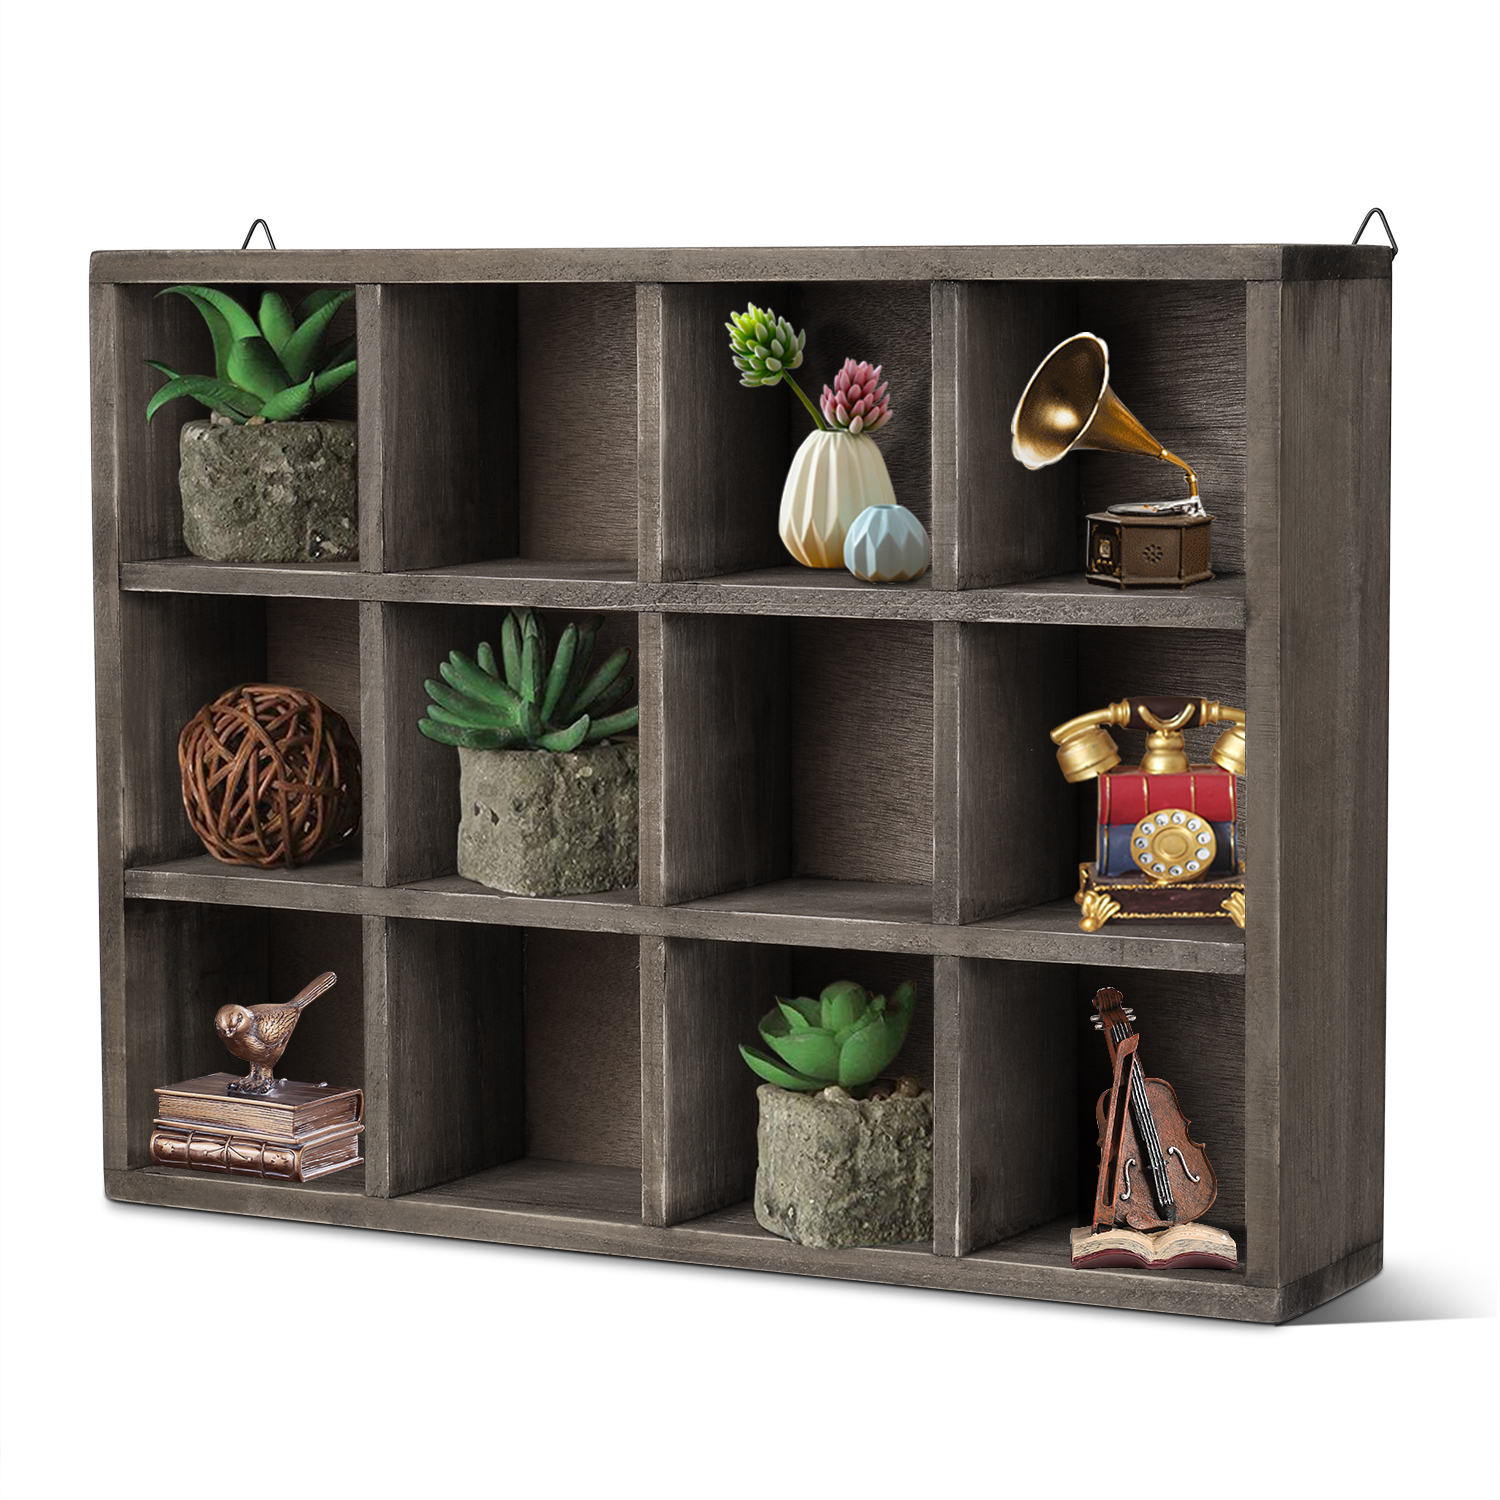 Details About Floating Shelf Brown Wood Wall Mounted Freestanding Shelving Unit Wooden Wall